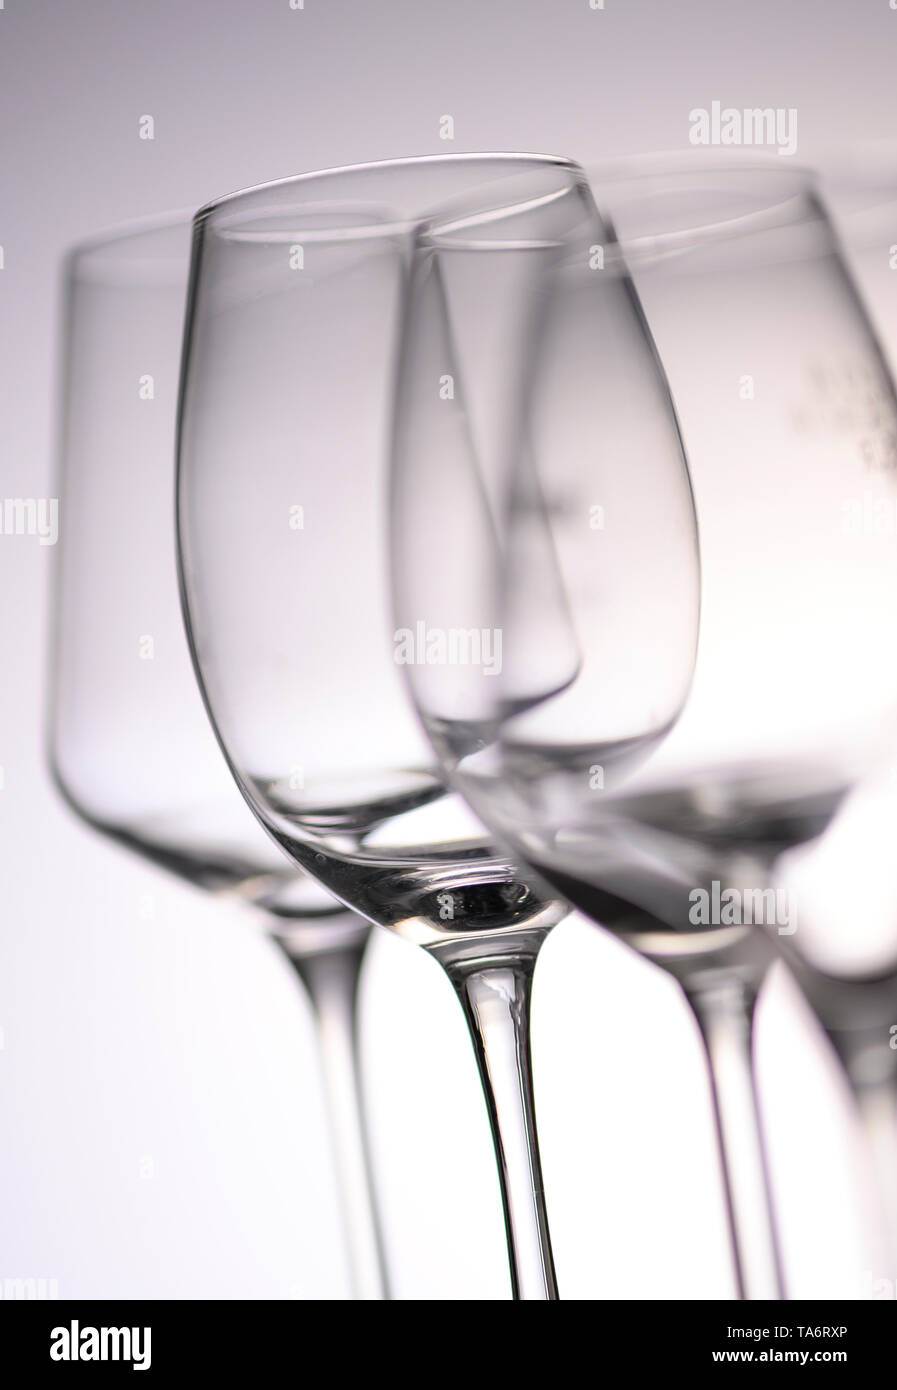 Empty Wine Glasses on white and grey background, France - Stock Image